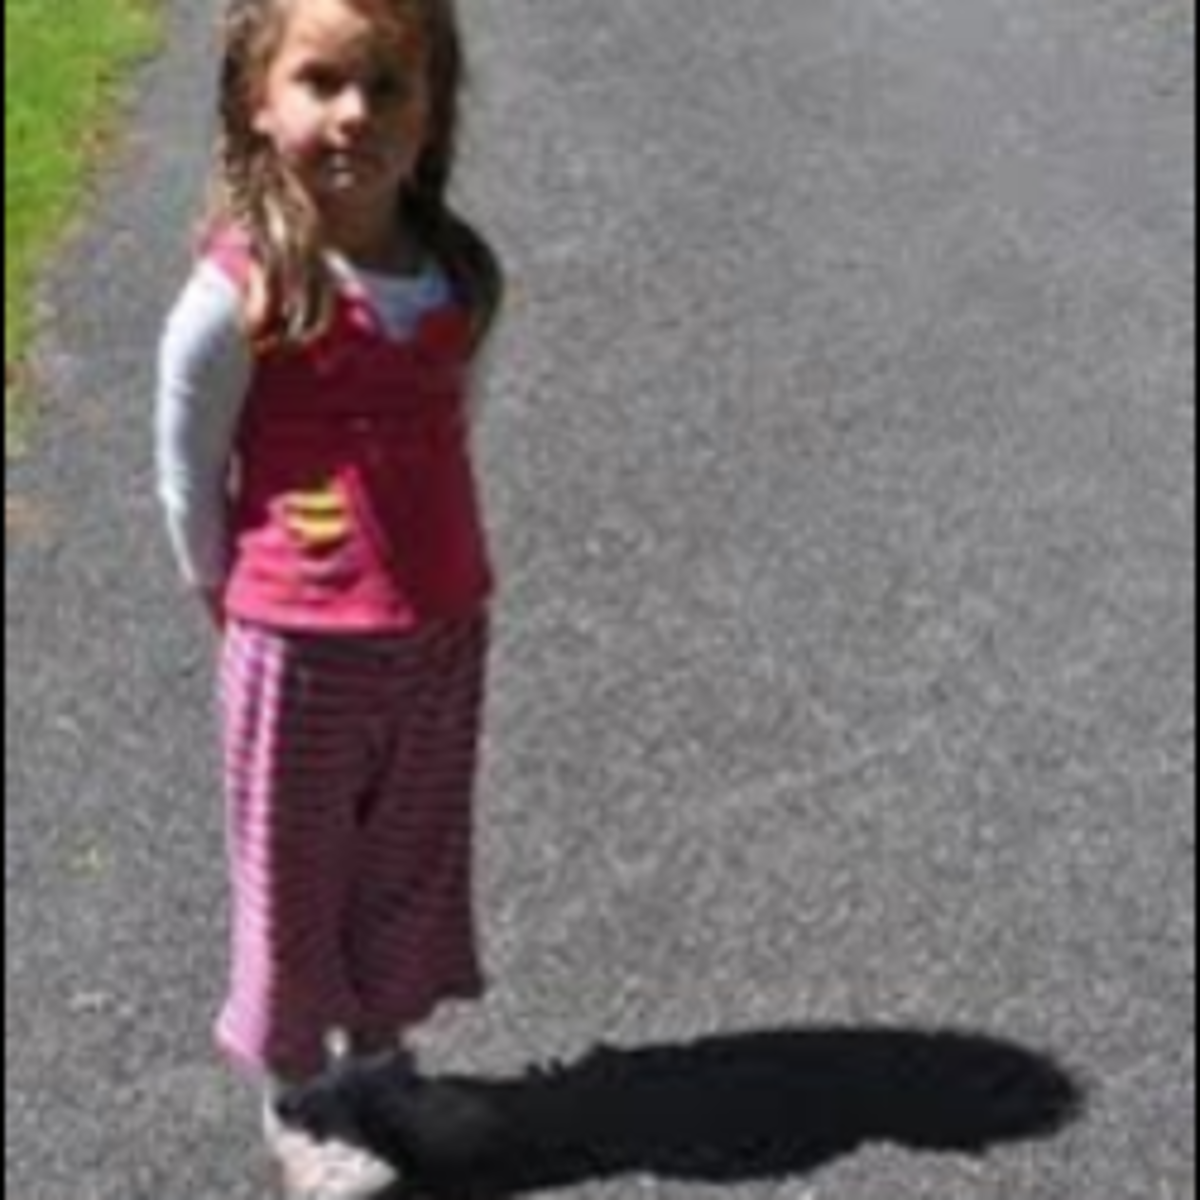 The best time to use a solar oven is when our shadow is shorter than you.